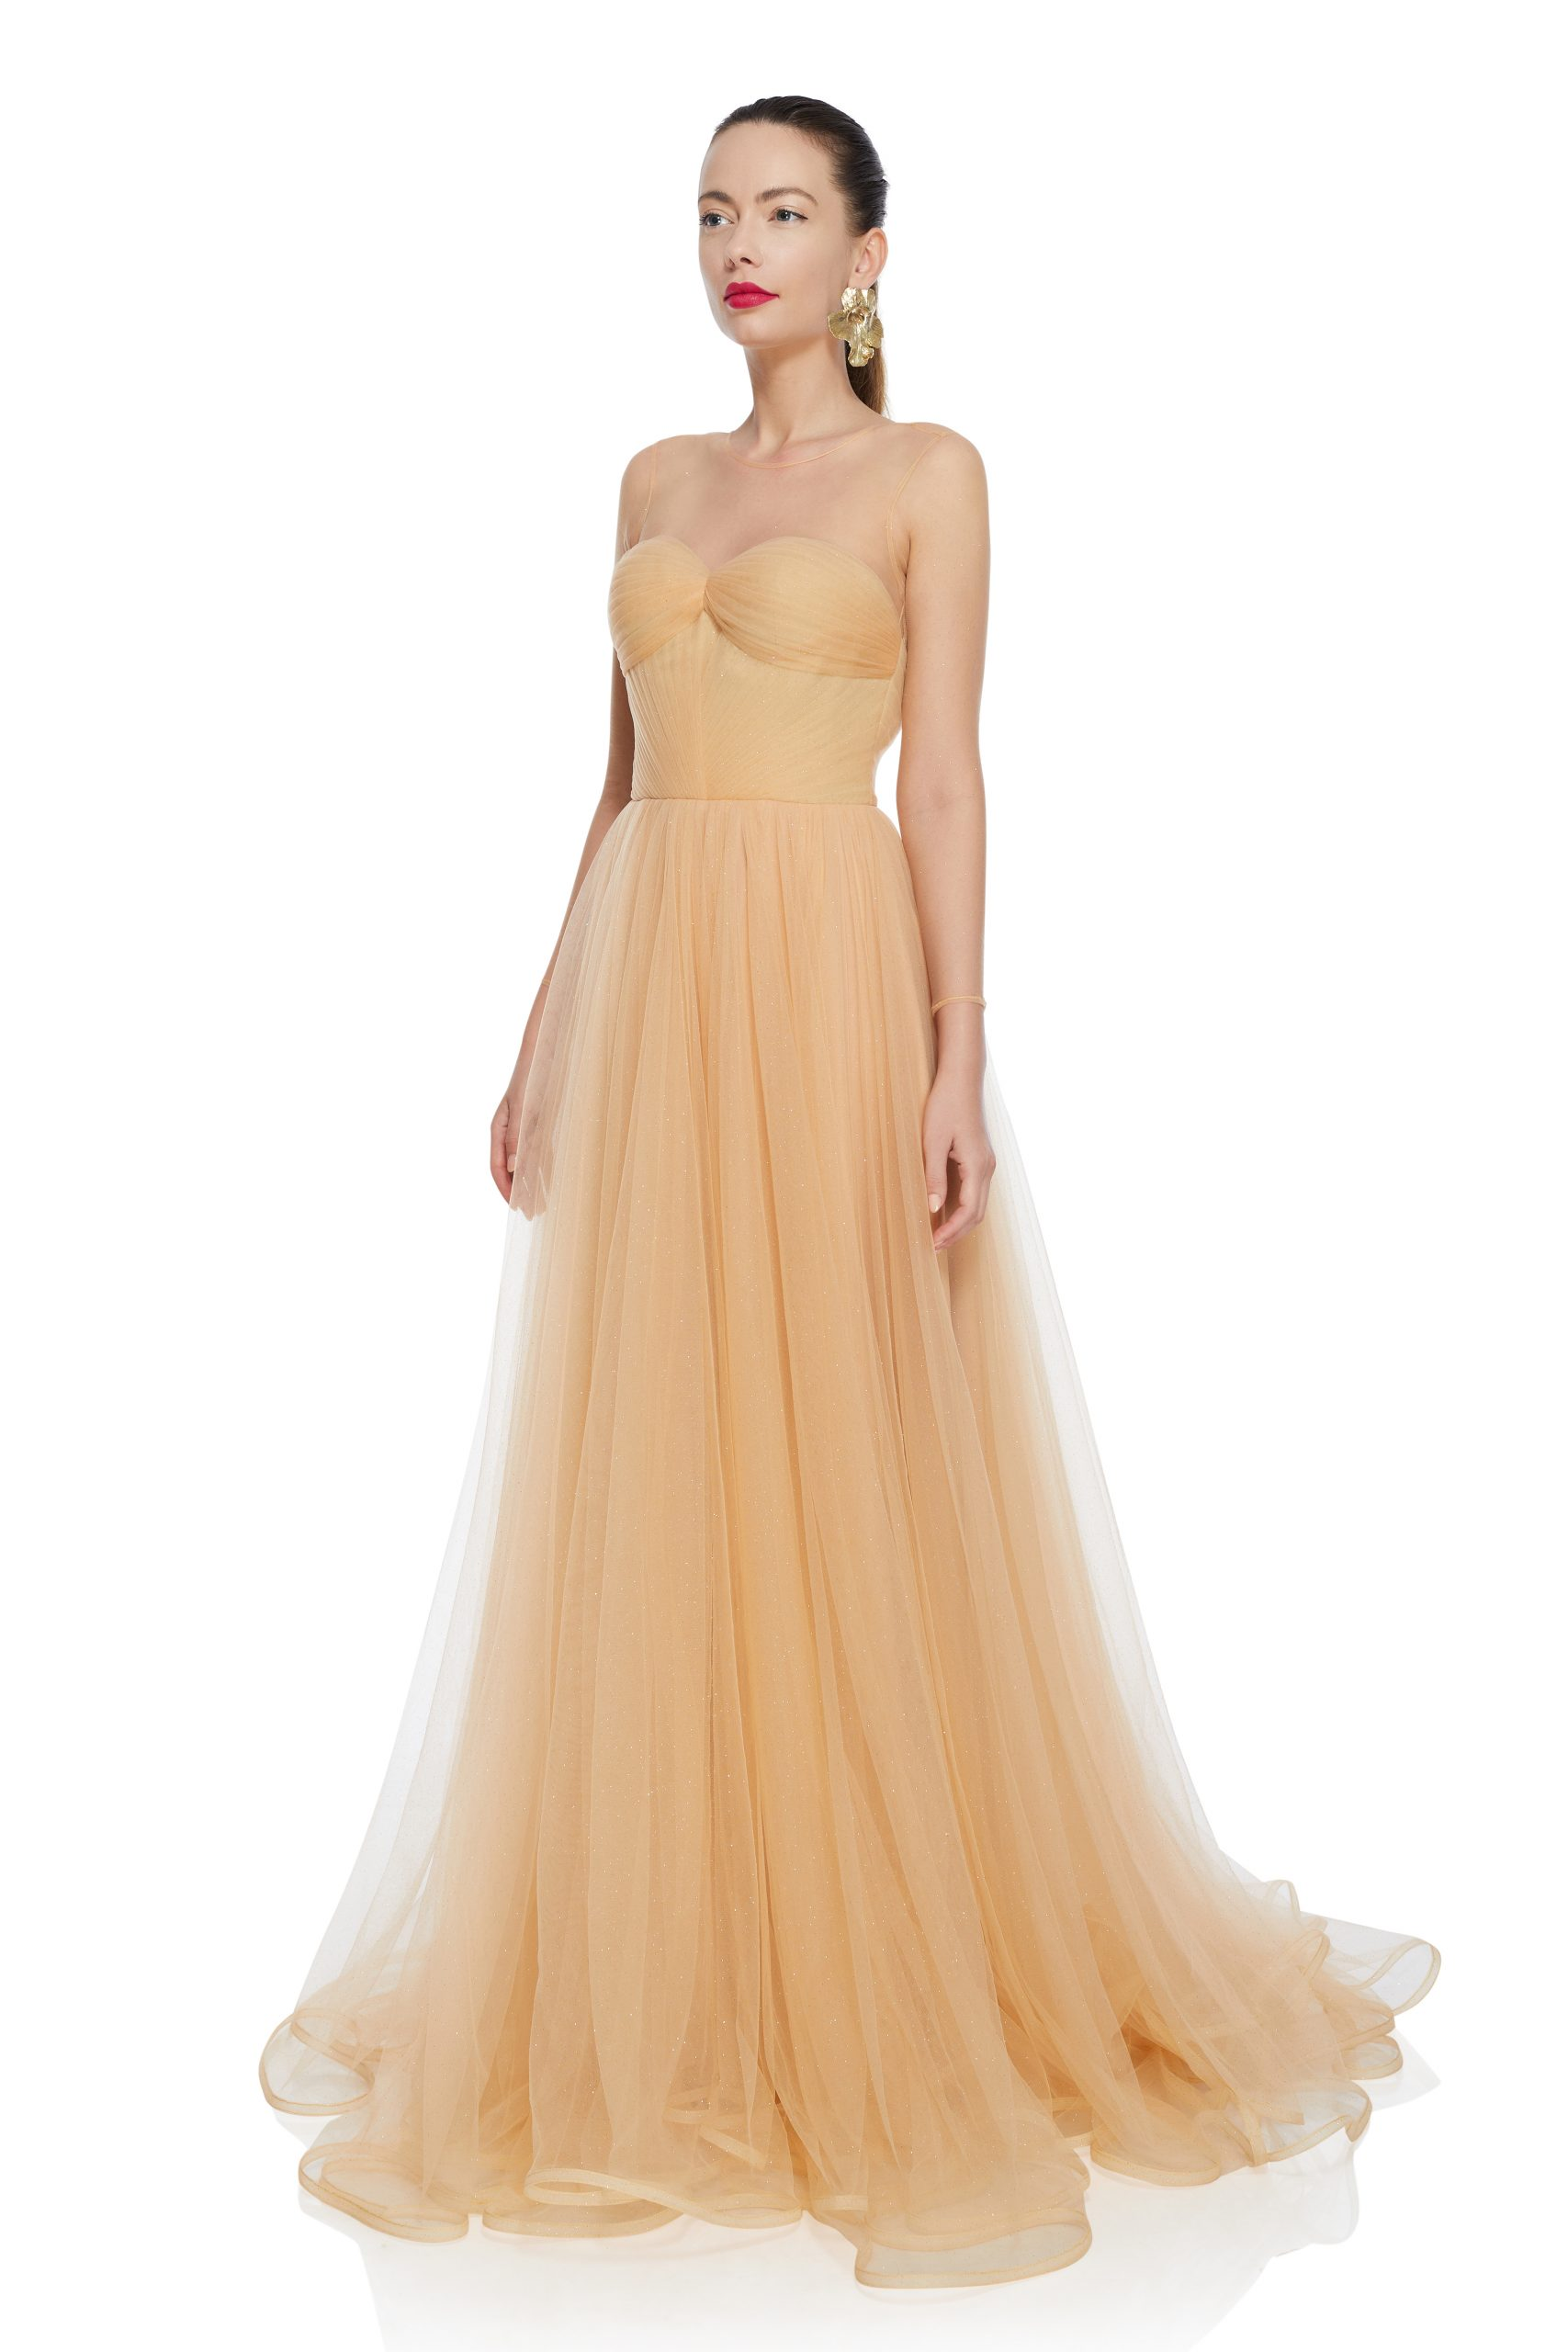 Princess style evening dress